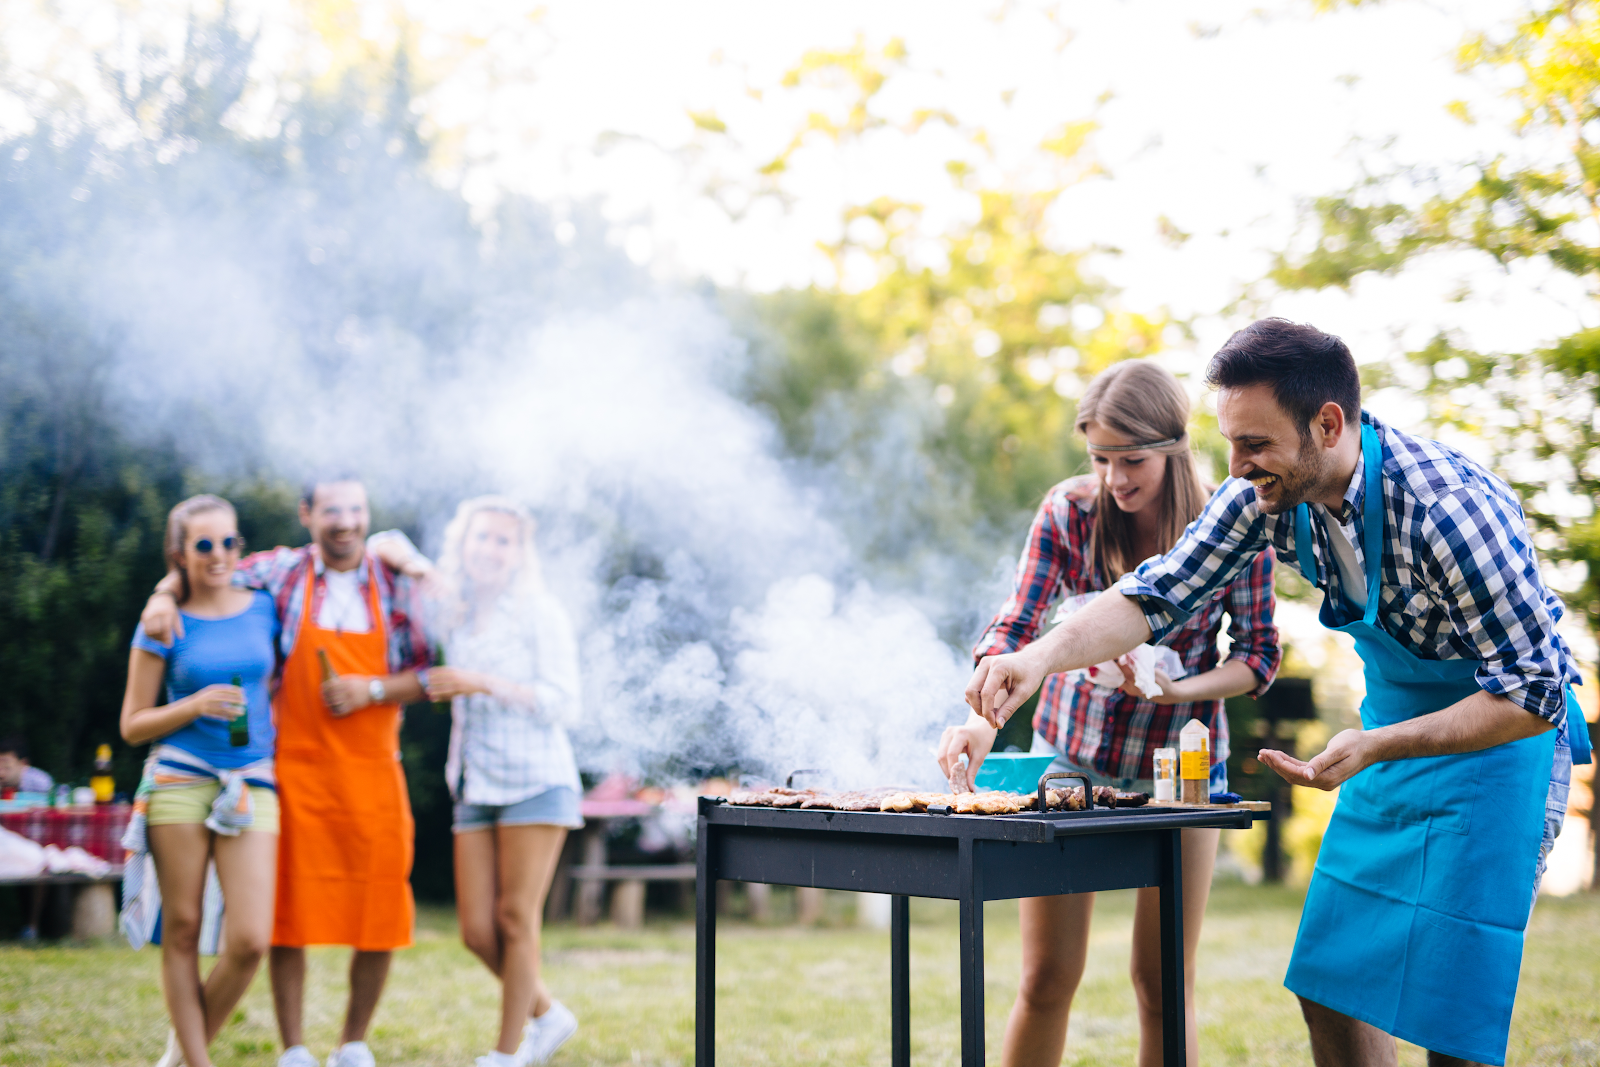 A family enjoys the outdoors while the father cooks on a grooved outdoor griddle